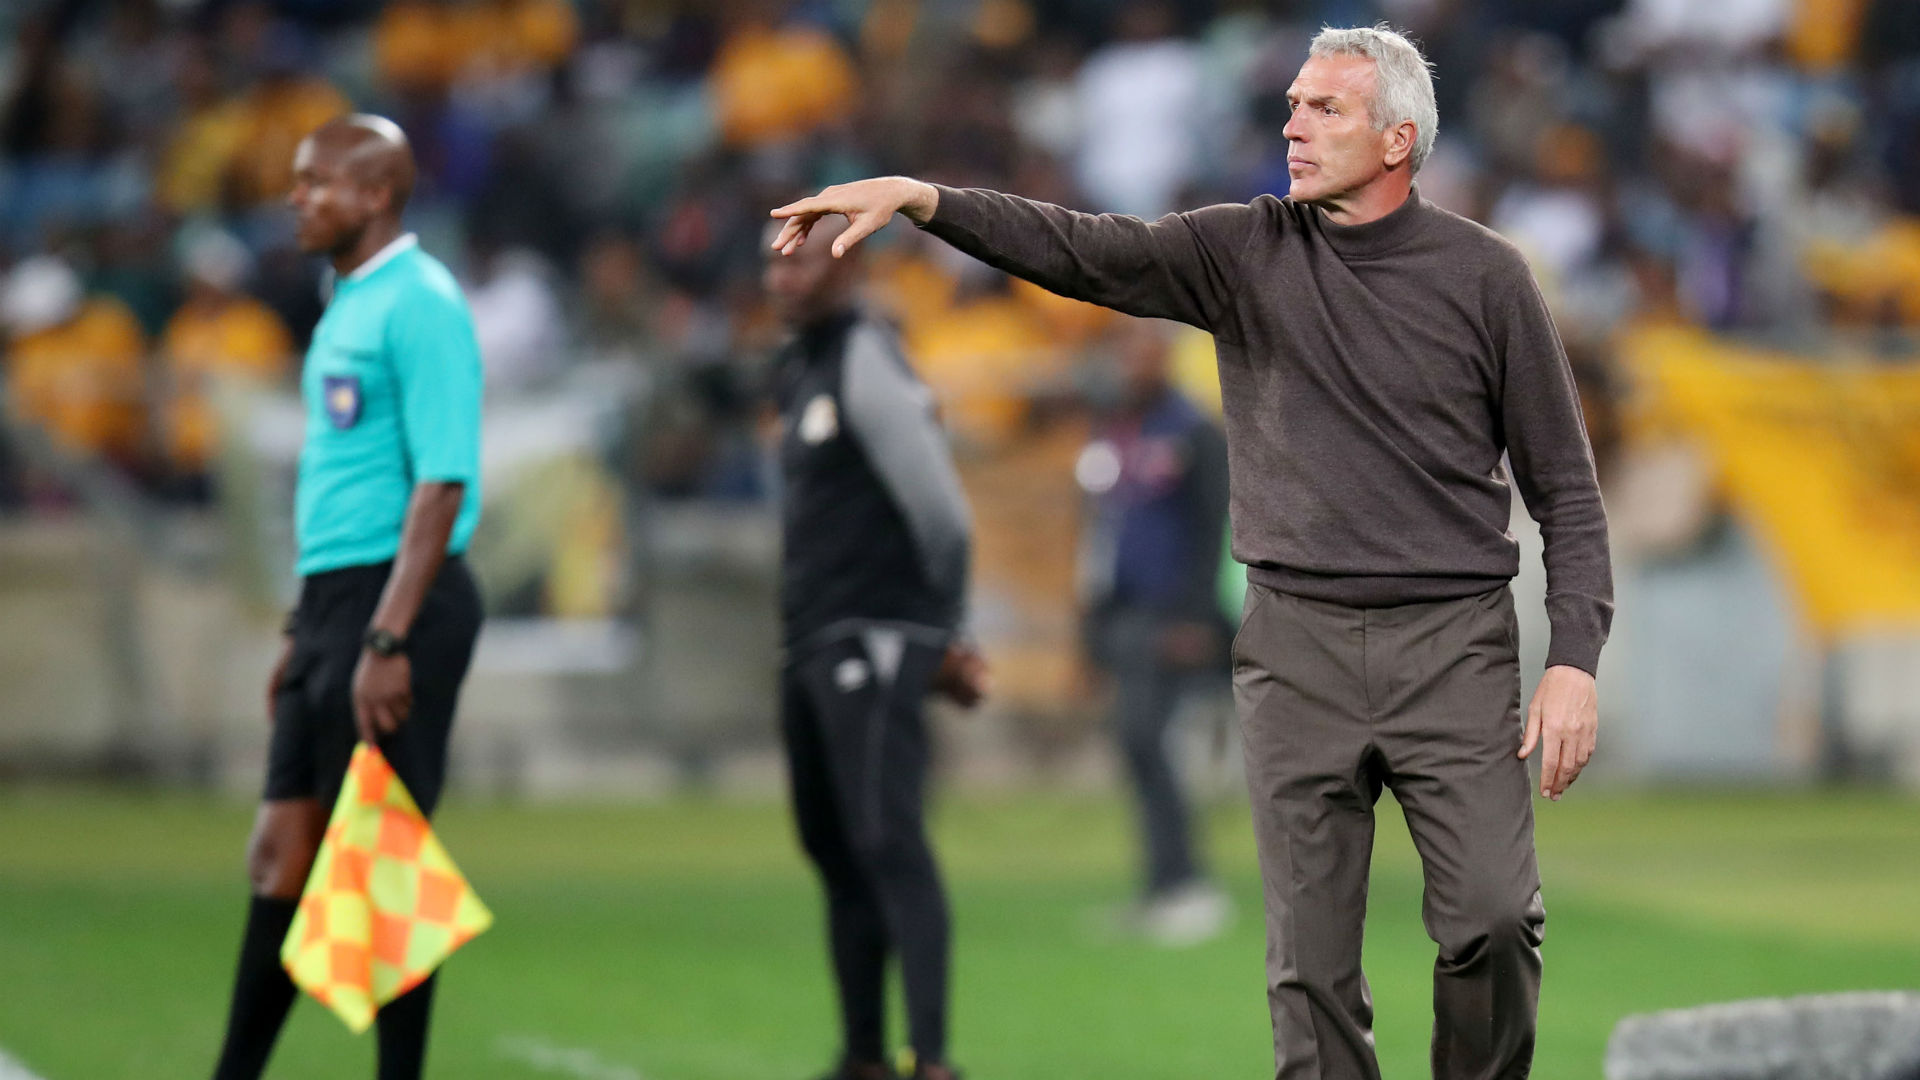 Celebration must not place Kaizer Chiefs under pressure – Middendorp